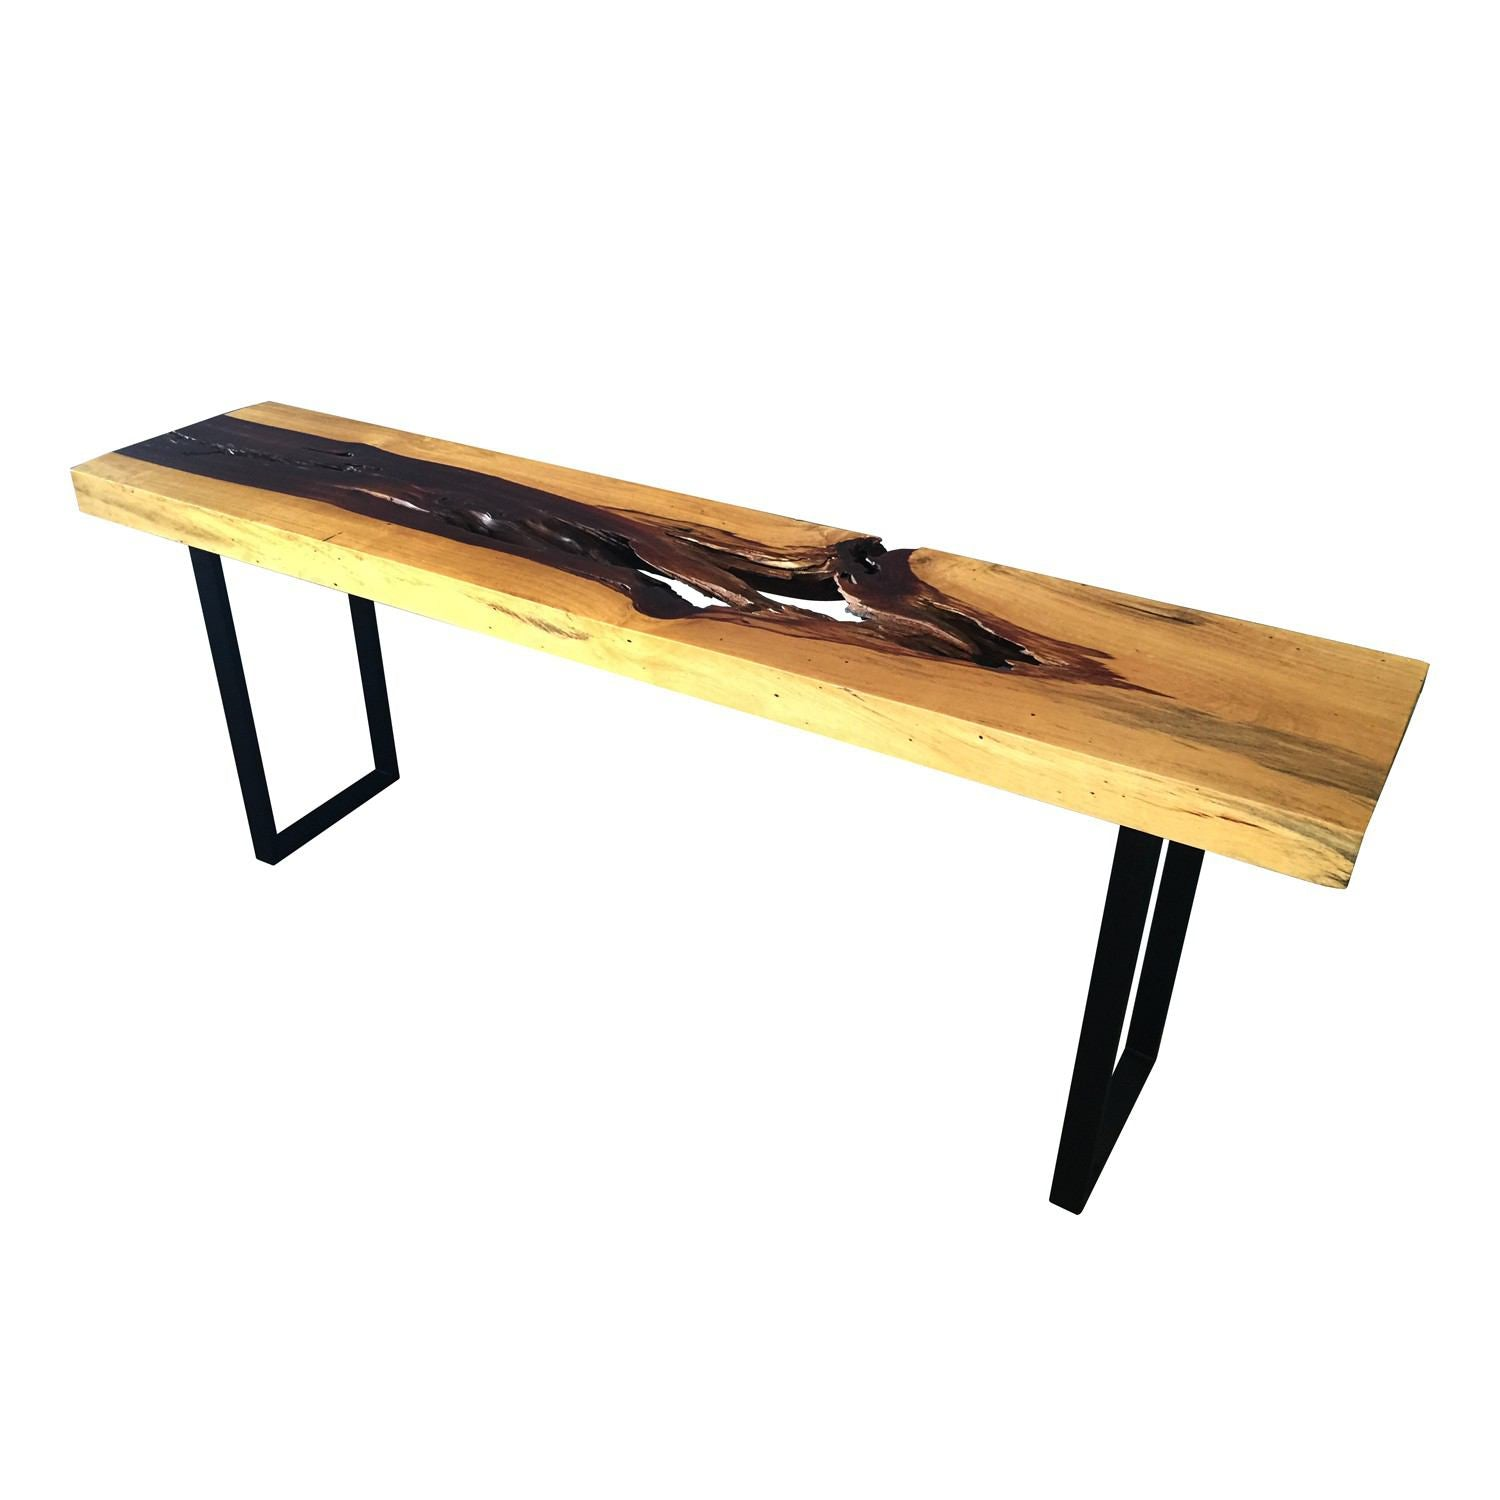 Tamarind Console Table LE-1040 by AIRE Furniture